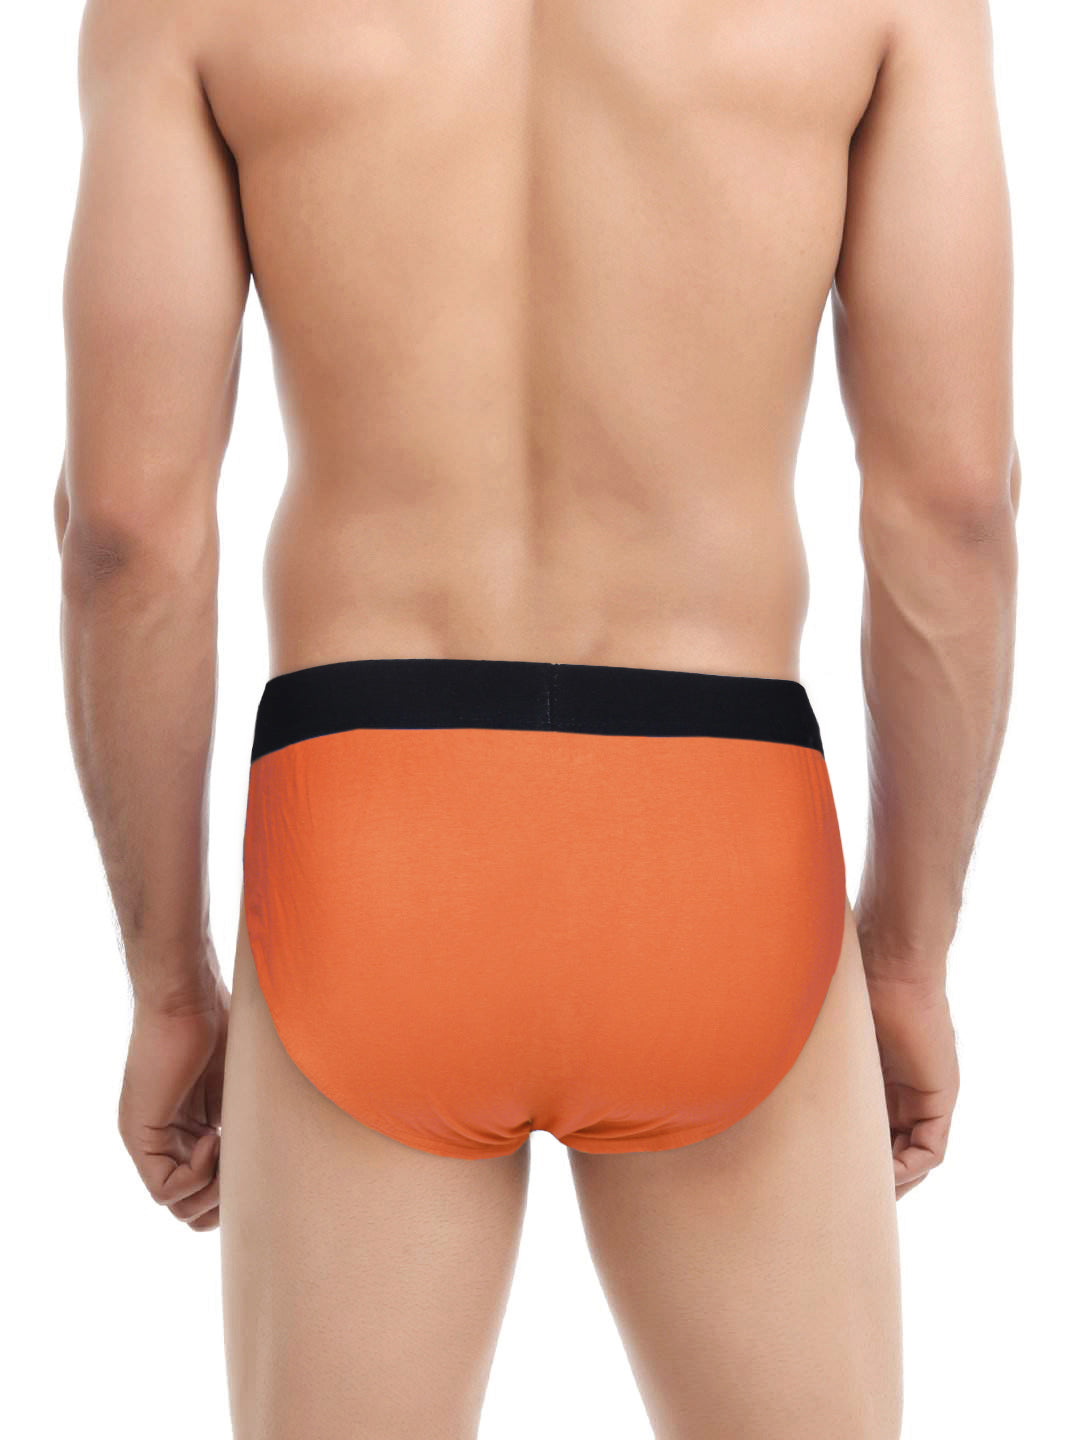 The Pop That Orange Briefs